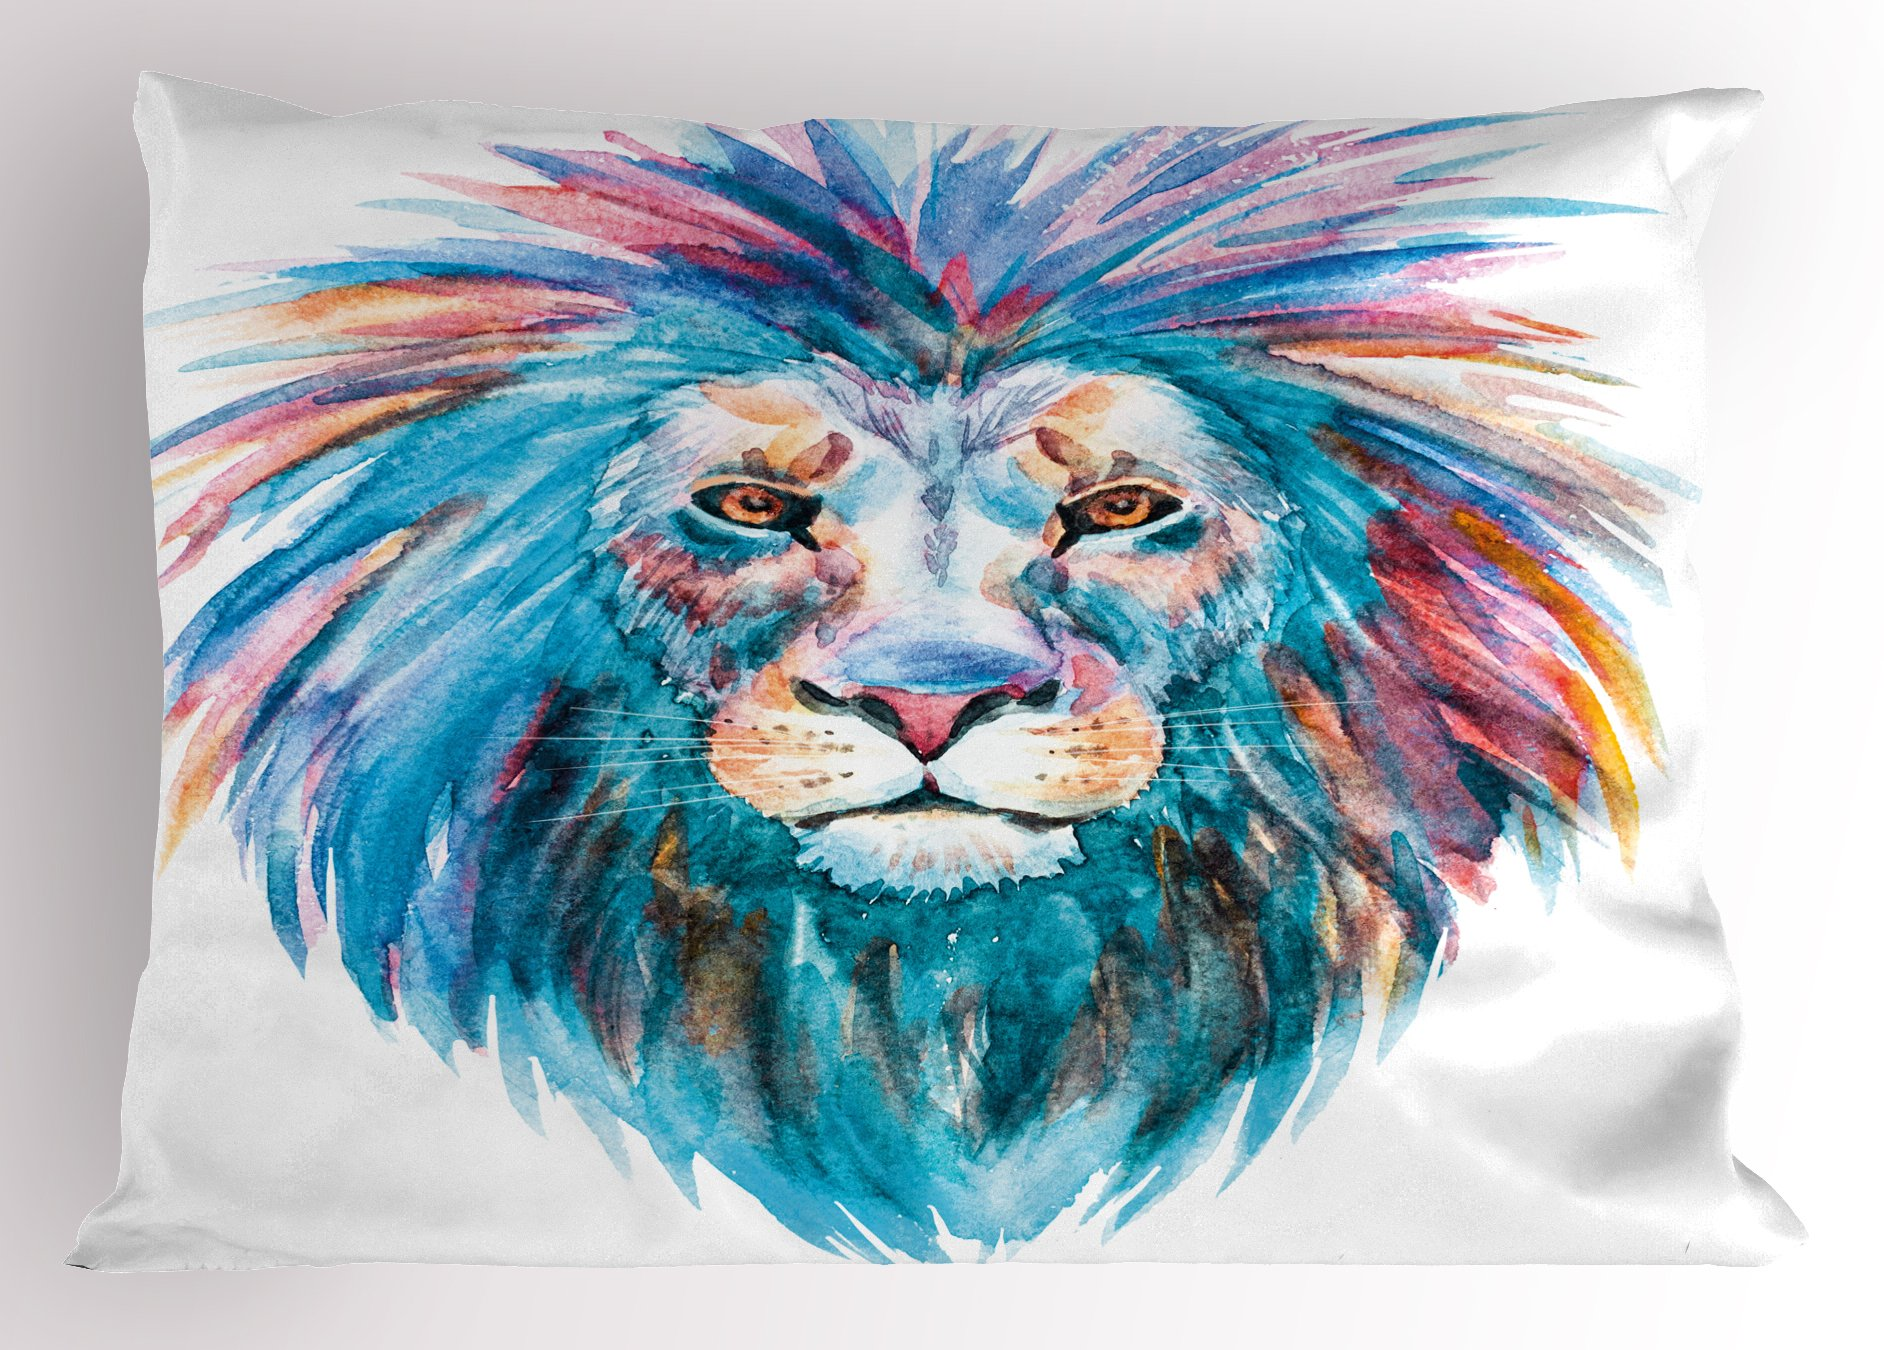 Lunarable Sketchy Pillow Sham, Wildlife Watercolor Effect Portrait Safari Animal Lion Illustration Print, Decorative Standard King Size Printed Pillowcase, 36 X 20 inches, Sky Blue Light Pink